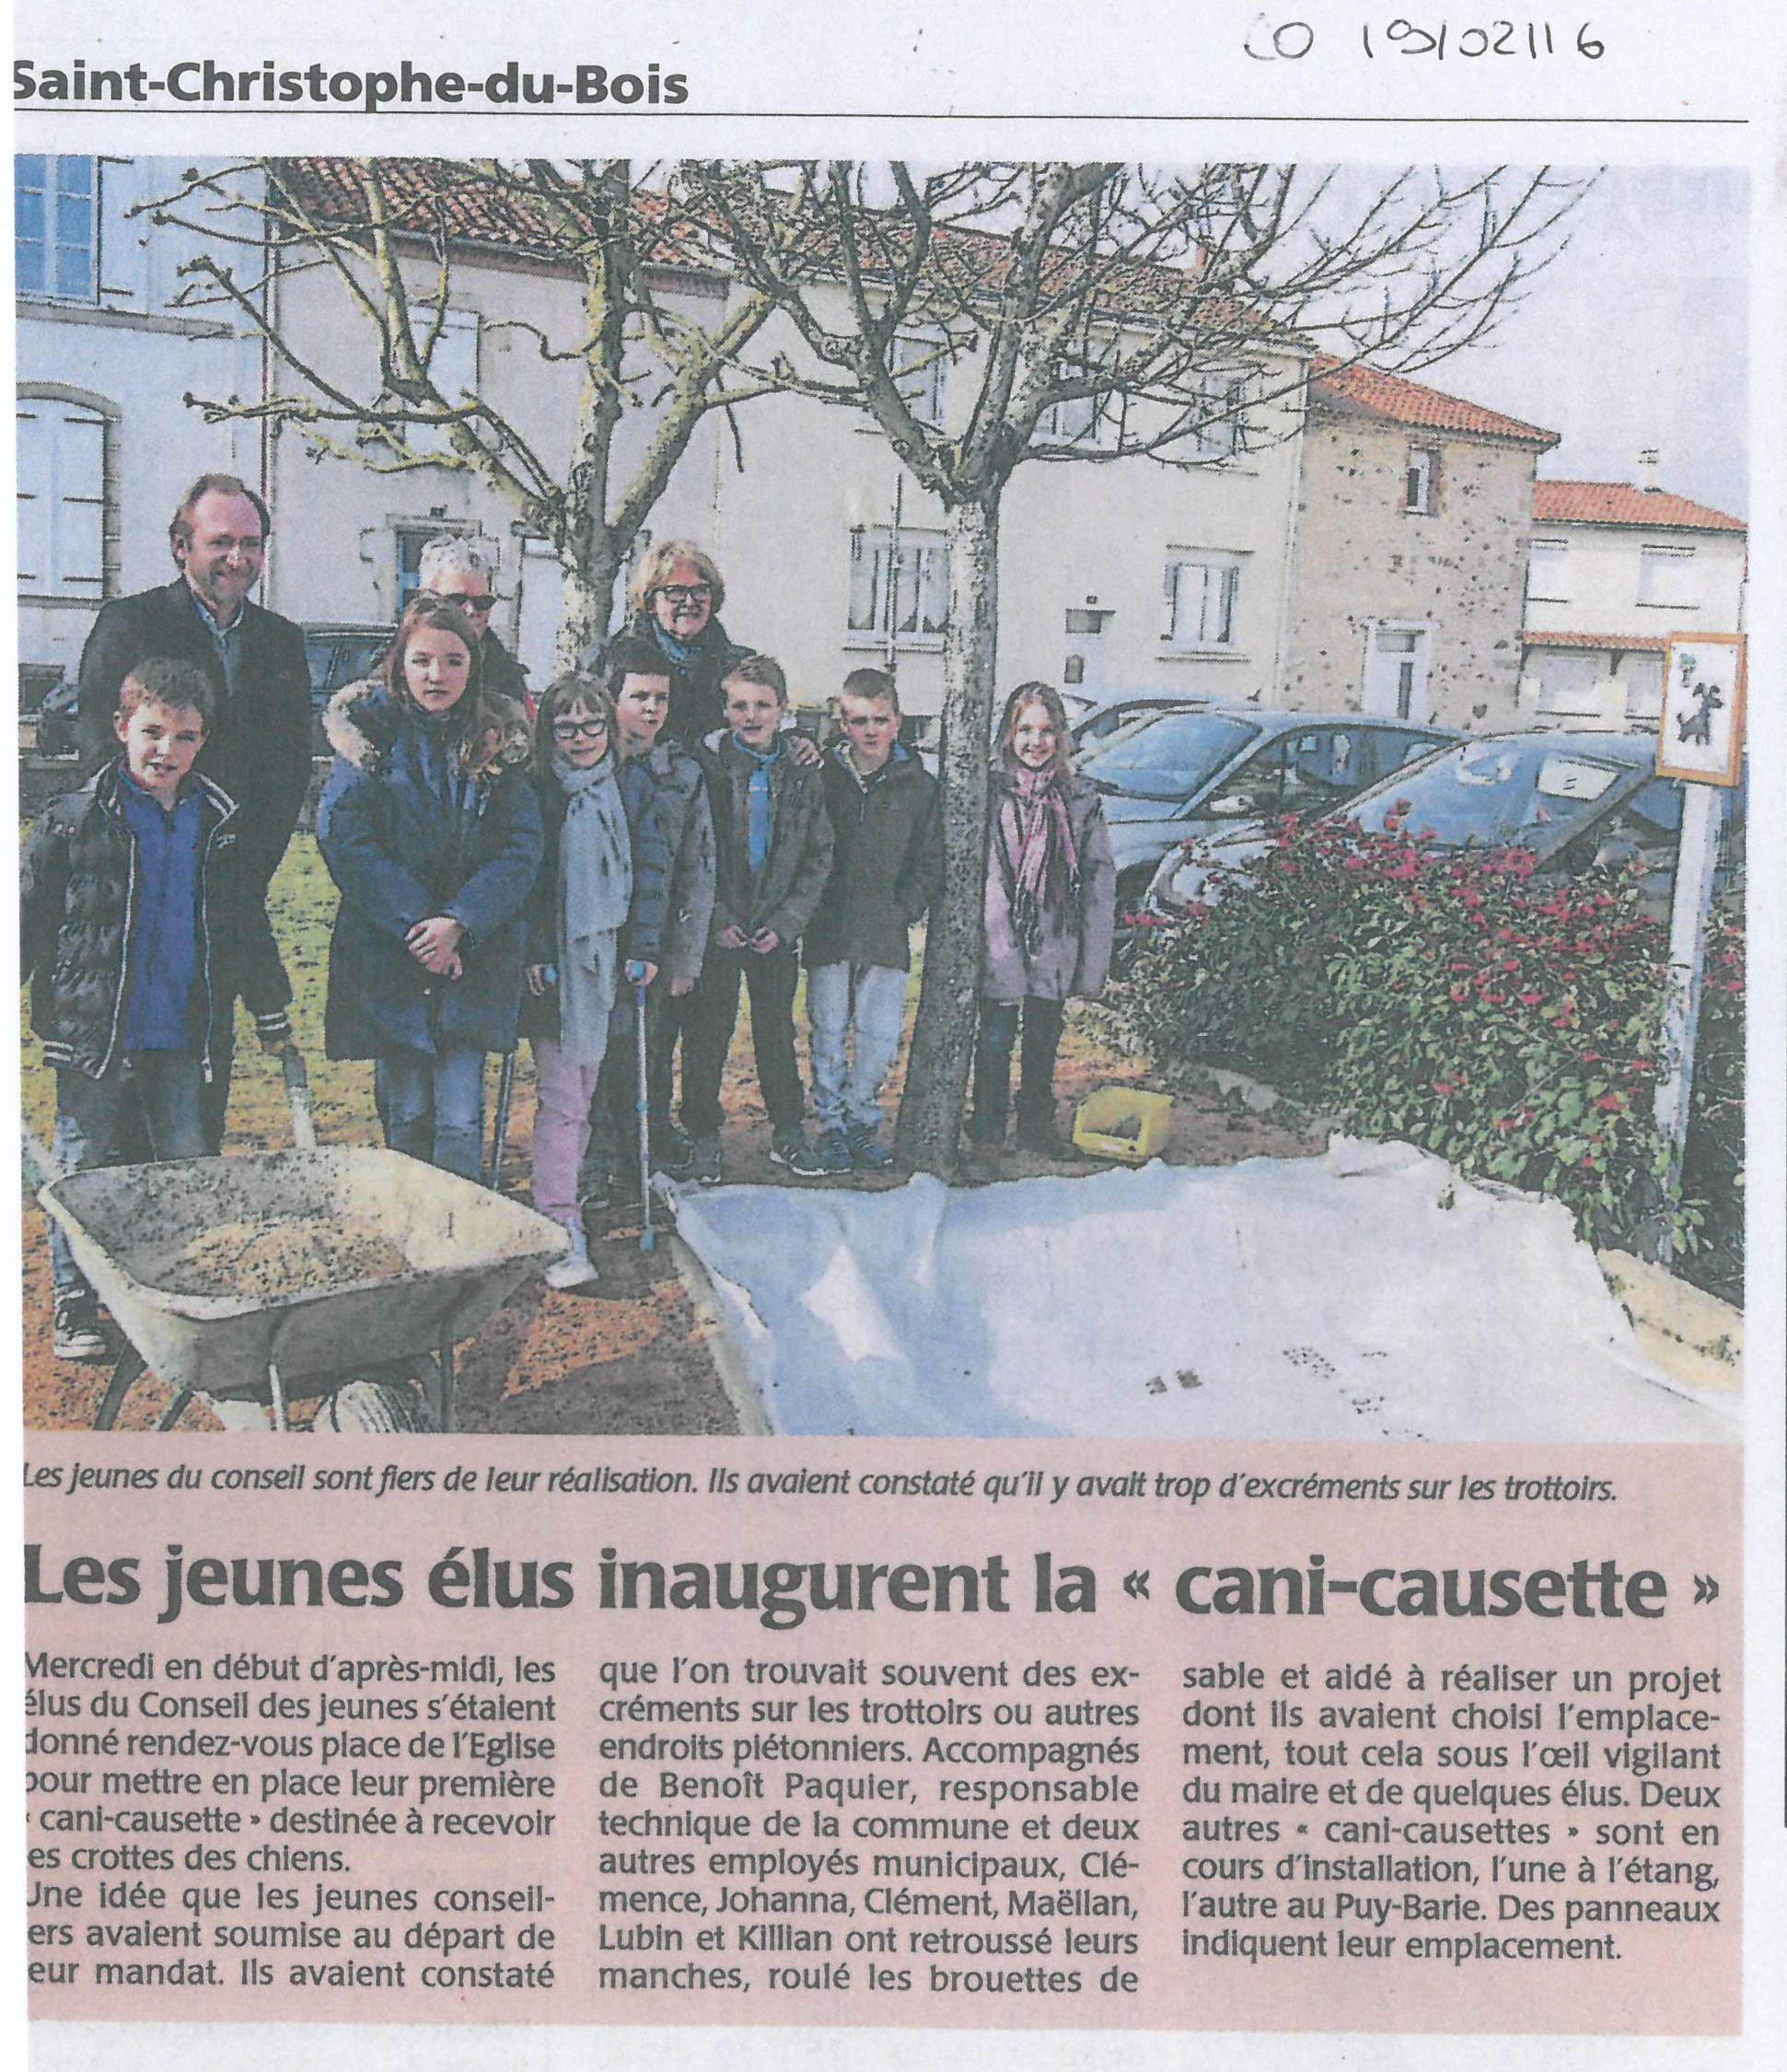 Art. CO 19022016 - Cani-causette